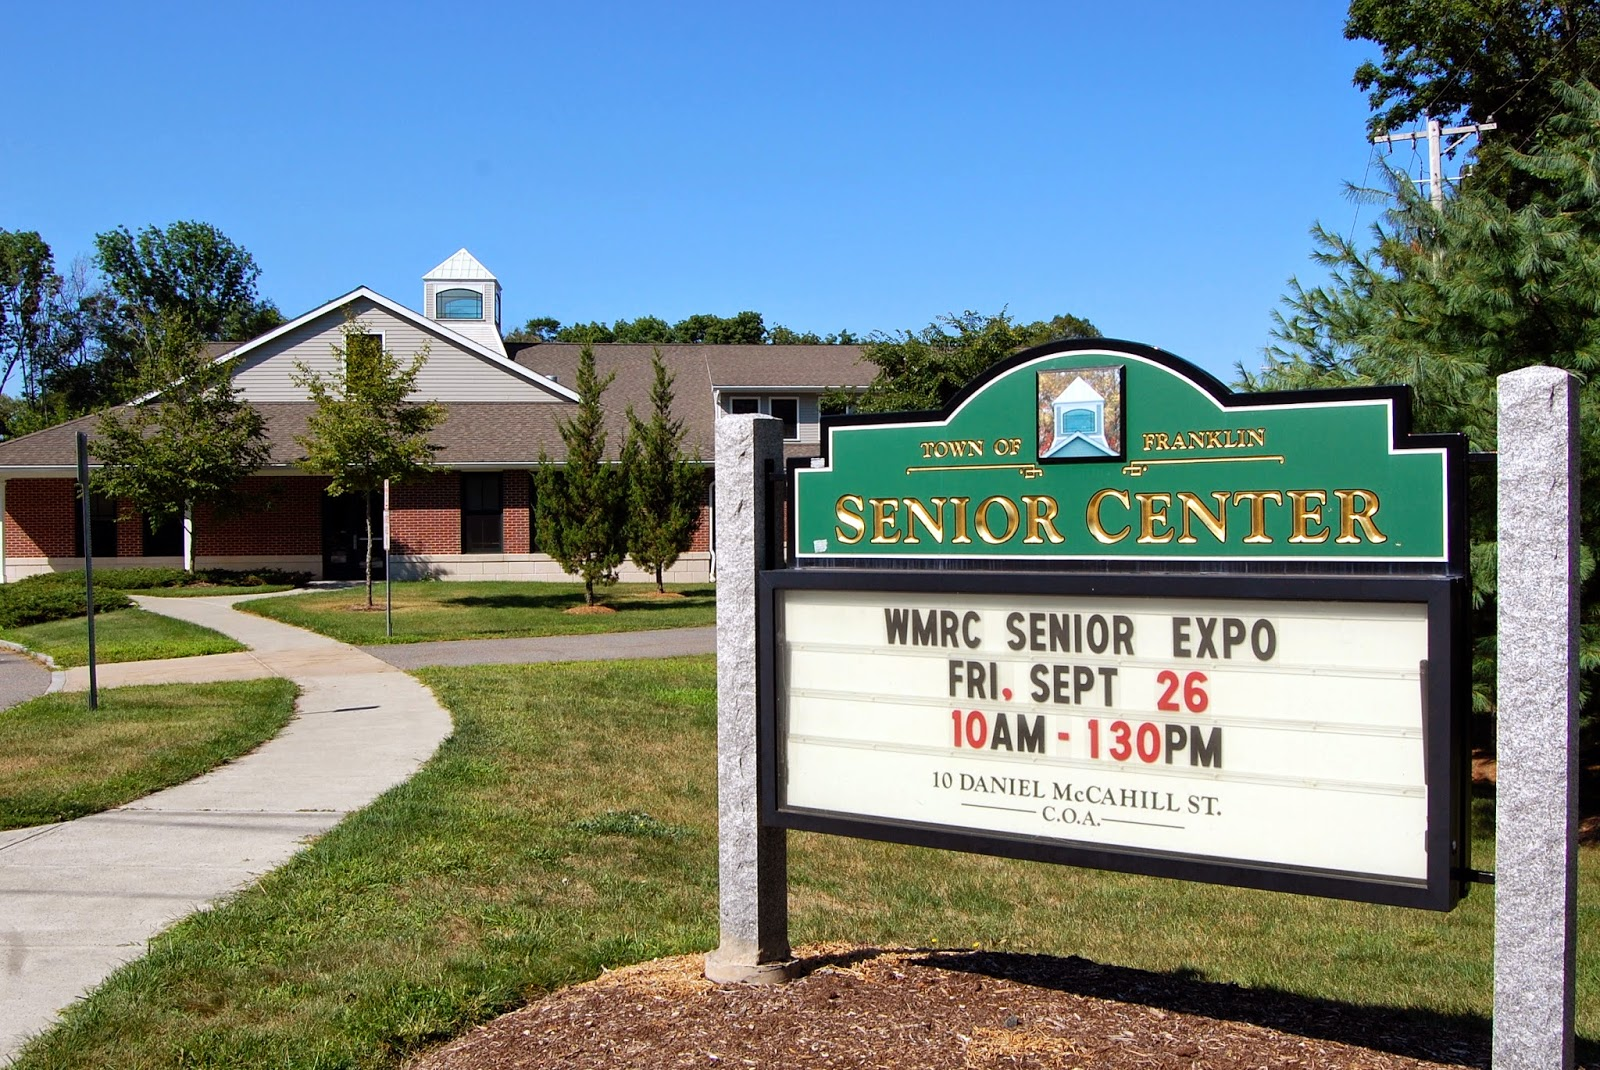 Senior Center - WMRC Expo Friday, Sep 26